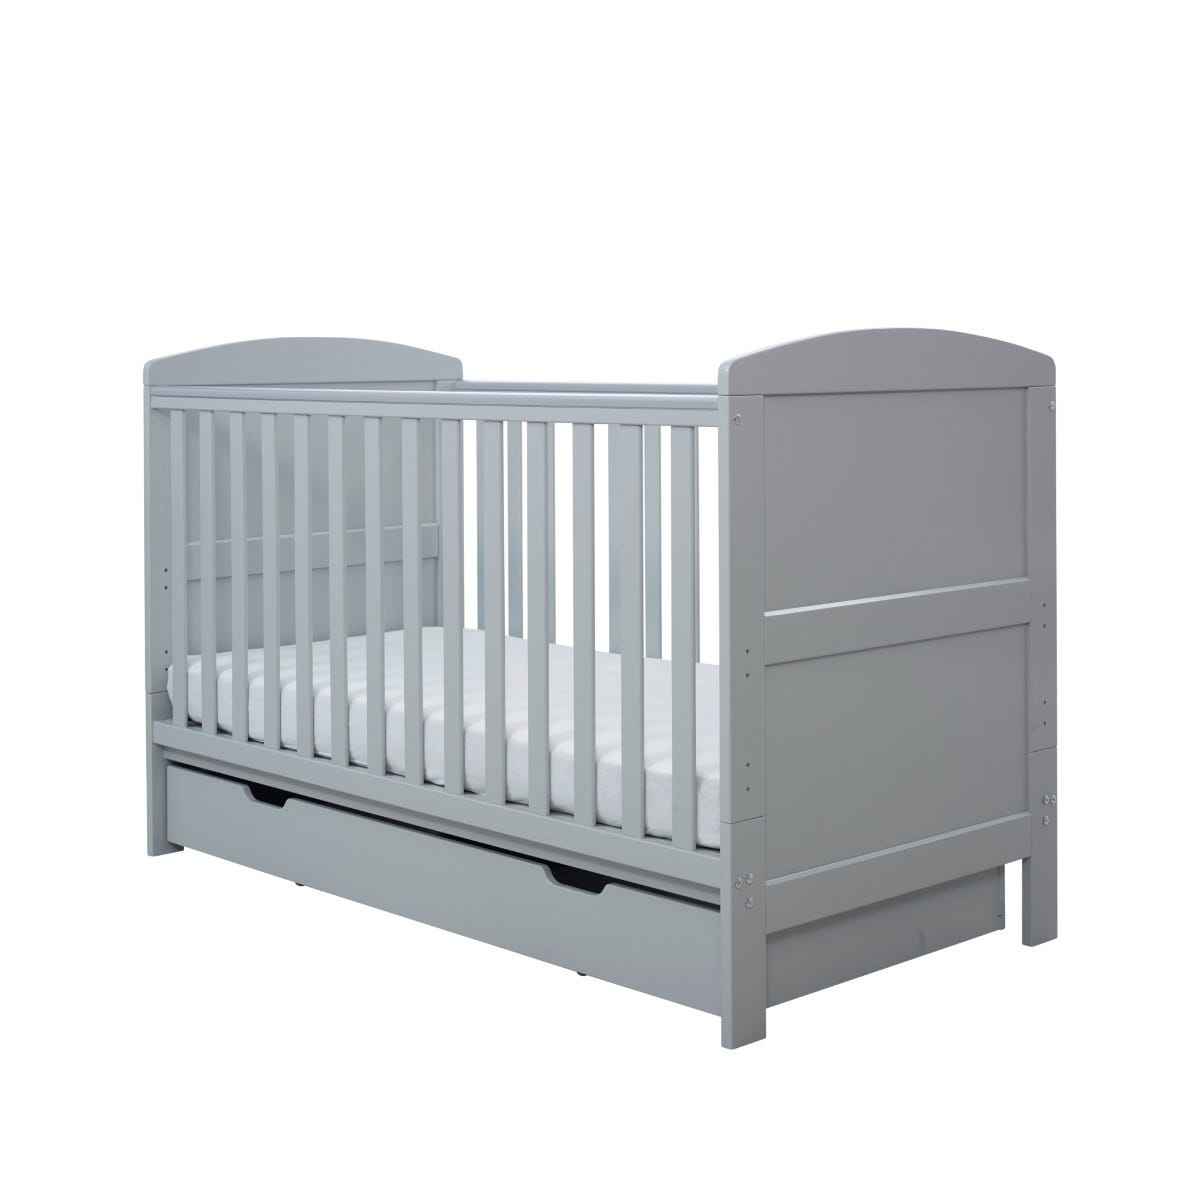 Ickle Bubba Coleby Classic Cot Bed Under Drawer and Pocket Sprung Mattress Grey